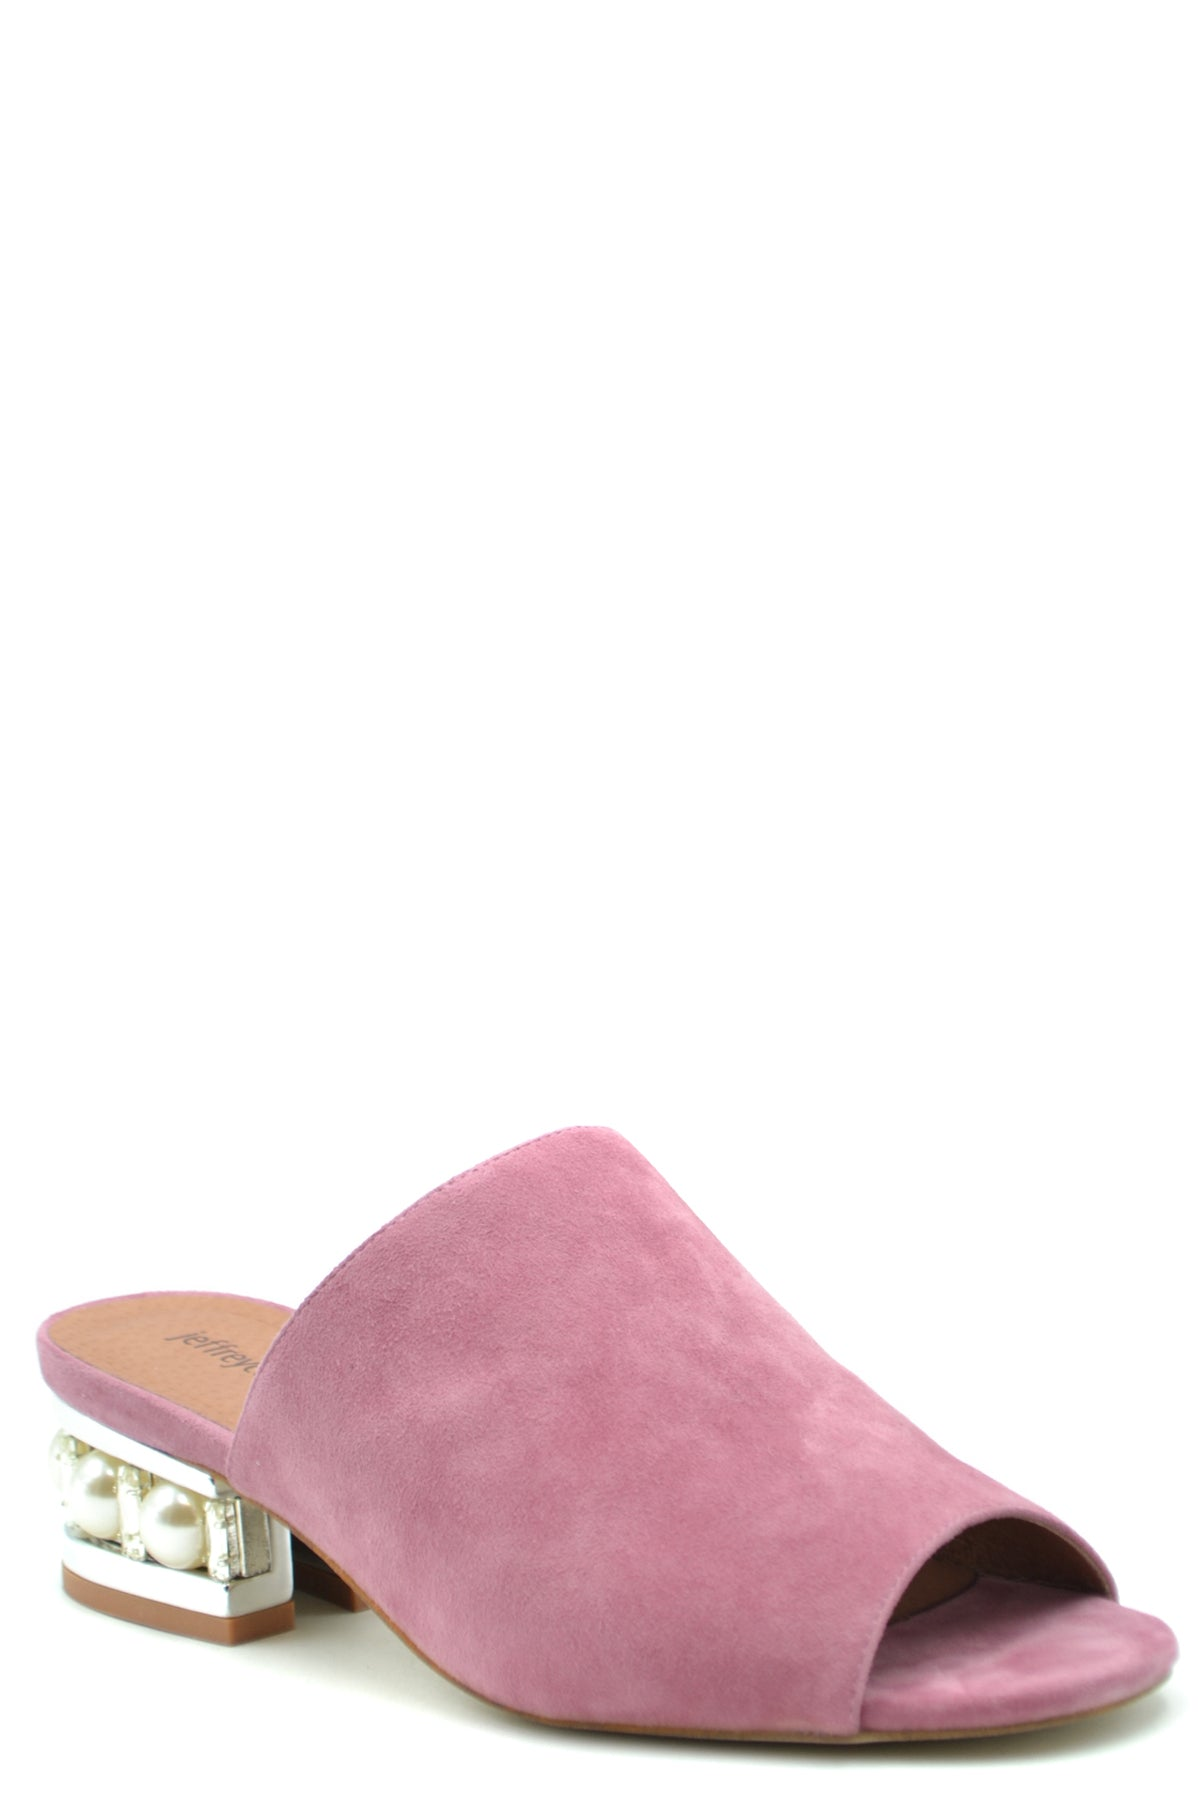 Shoes Jeffrey Campbell-Sandals - WOMAN-Product Details Type Of Accessory: ShoesTerms: New With LabelHeel'S Height: 4.5 CmMain Color: PinkGender: WomanMade In: ChinaManufacturer Part Number: Arcita-MpsSize: EuYear: 2018Season: Spring / SummerComposition: Chamois 100%-Keyomi-Sook